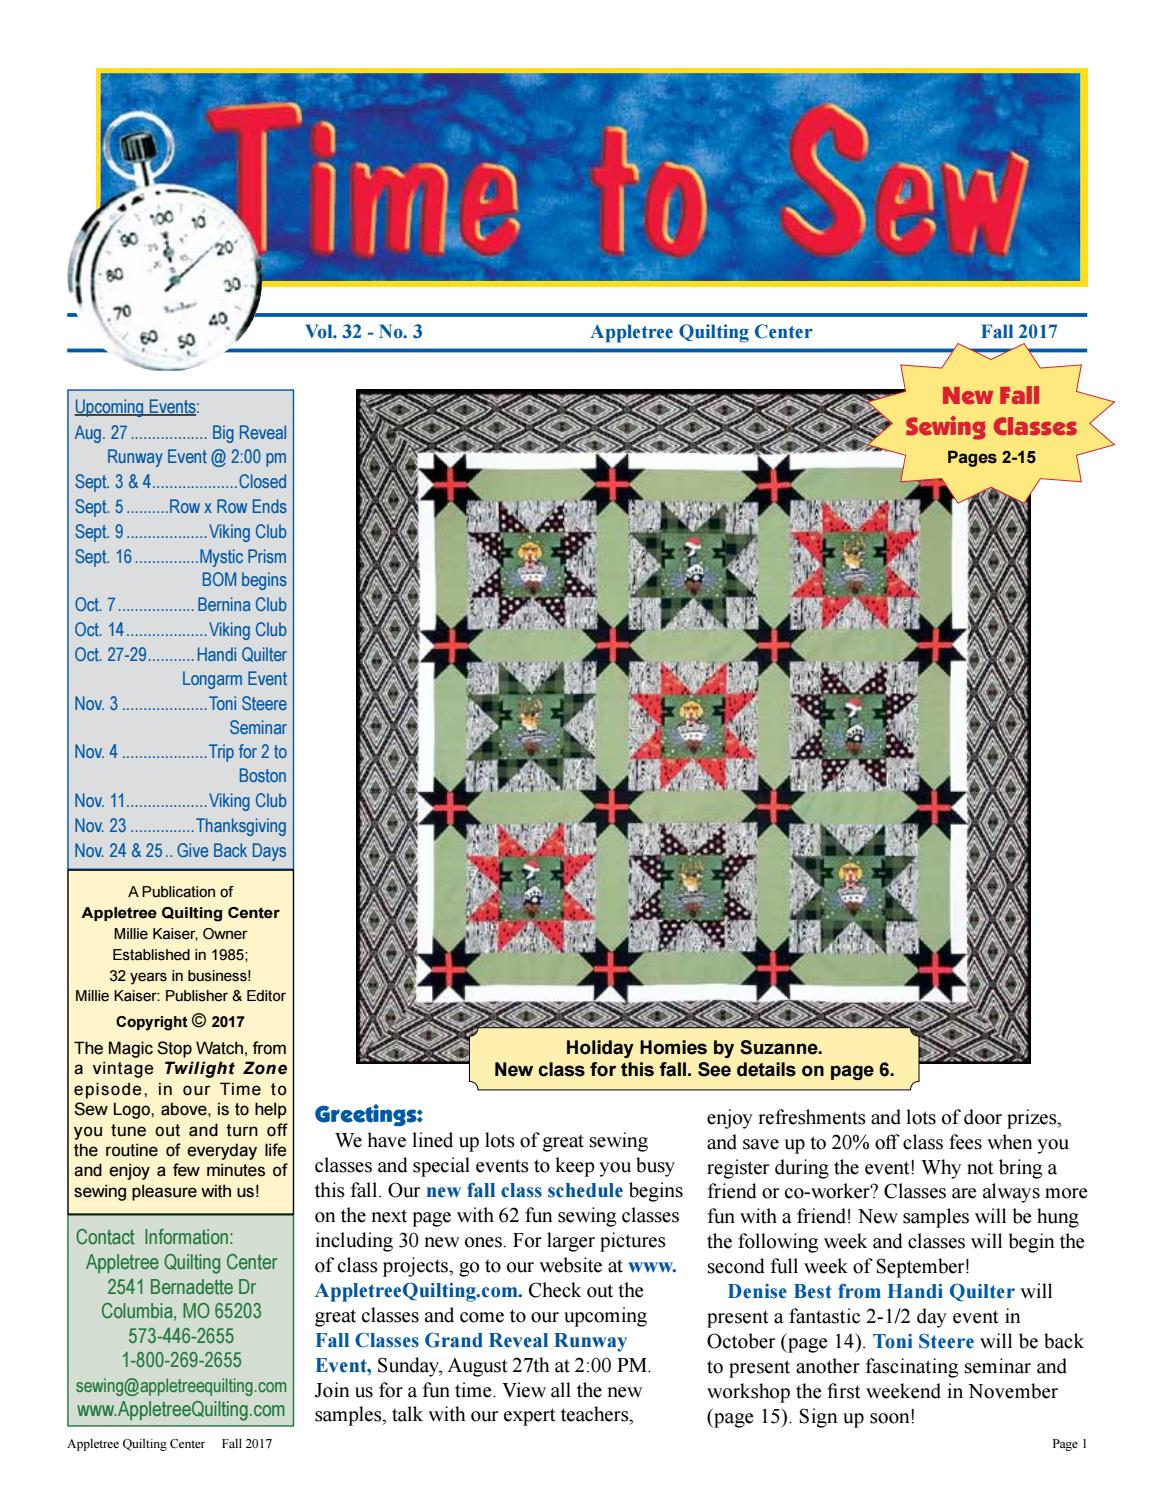 Appletree Quilting Center's Fall 2017 Newsletter & Sewing